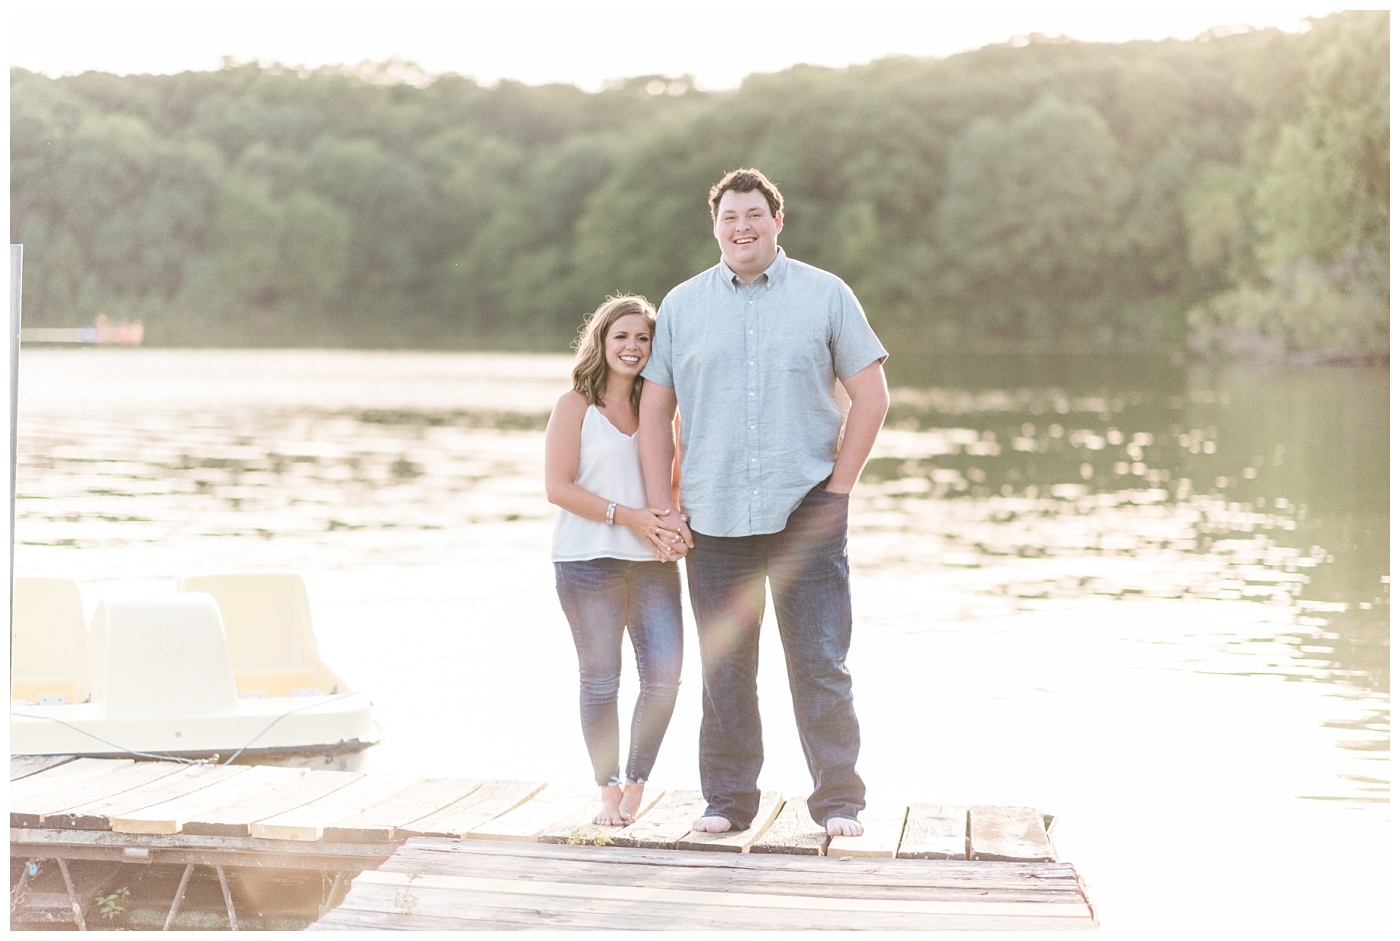 Stephanie Marie Photography Lake McBride Engagement Session Dubuque Iowa City Wedding Photographer Morgan Lucas_0009-1.jpg